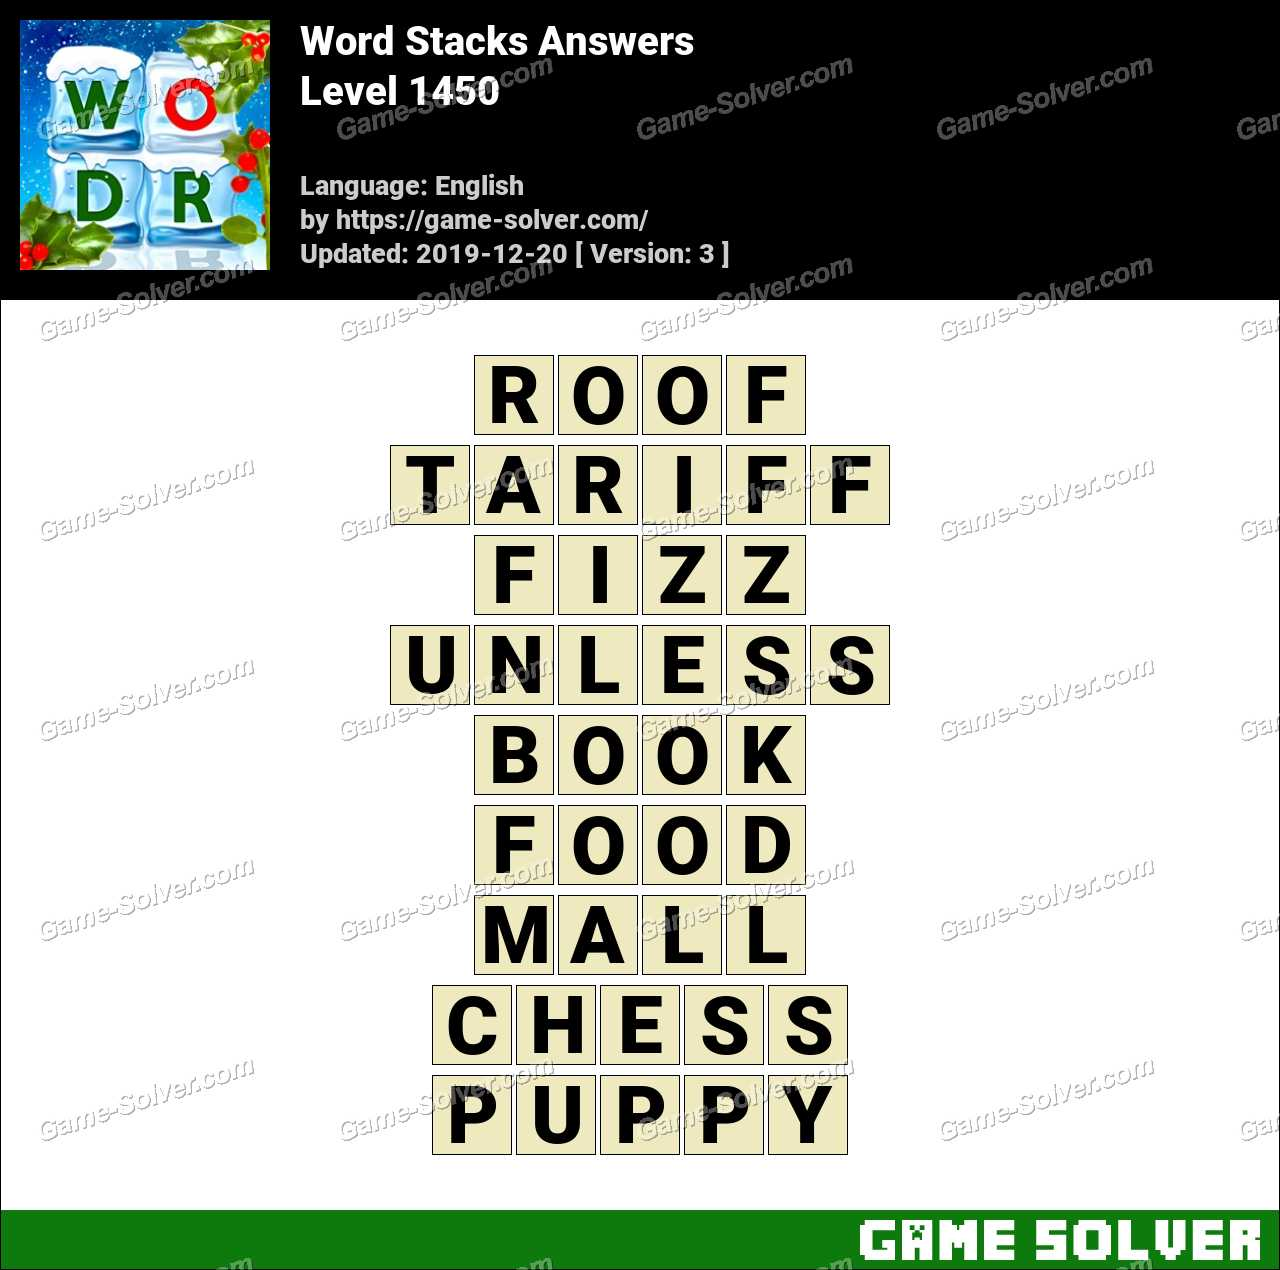 Word Stacks Level 1450 Answers